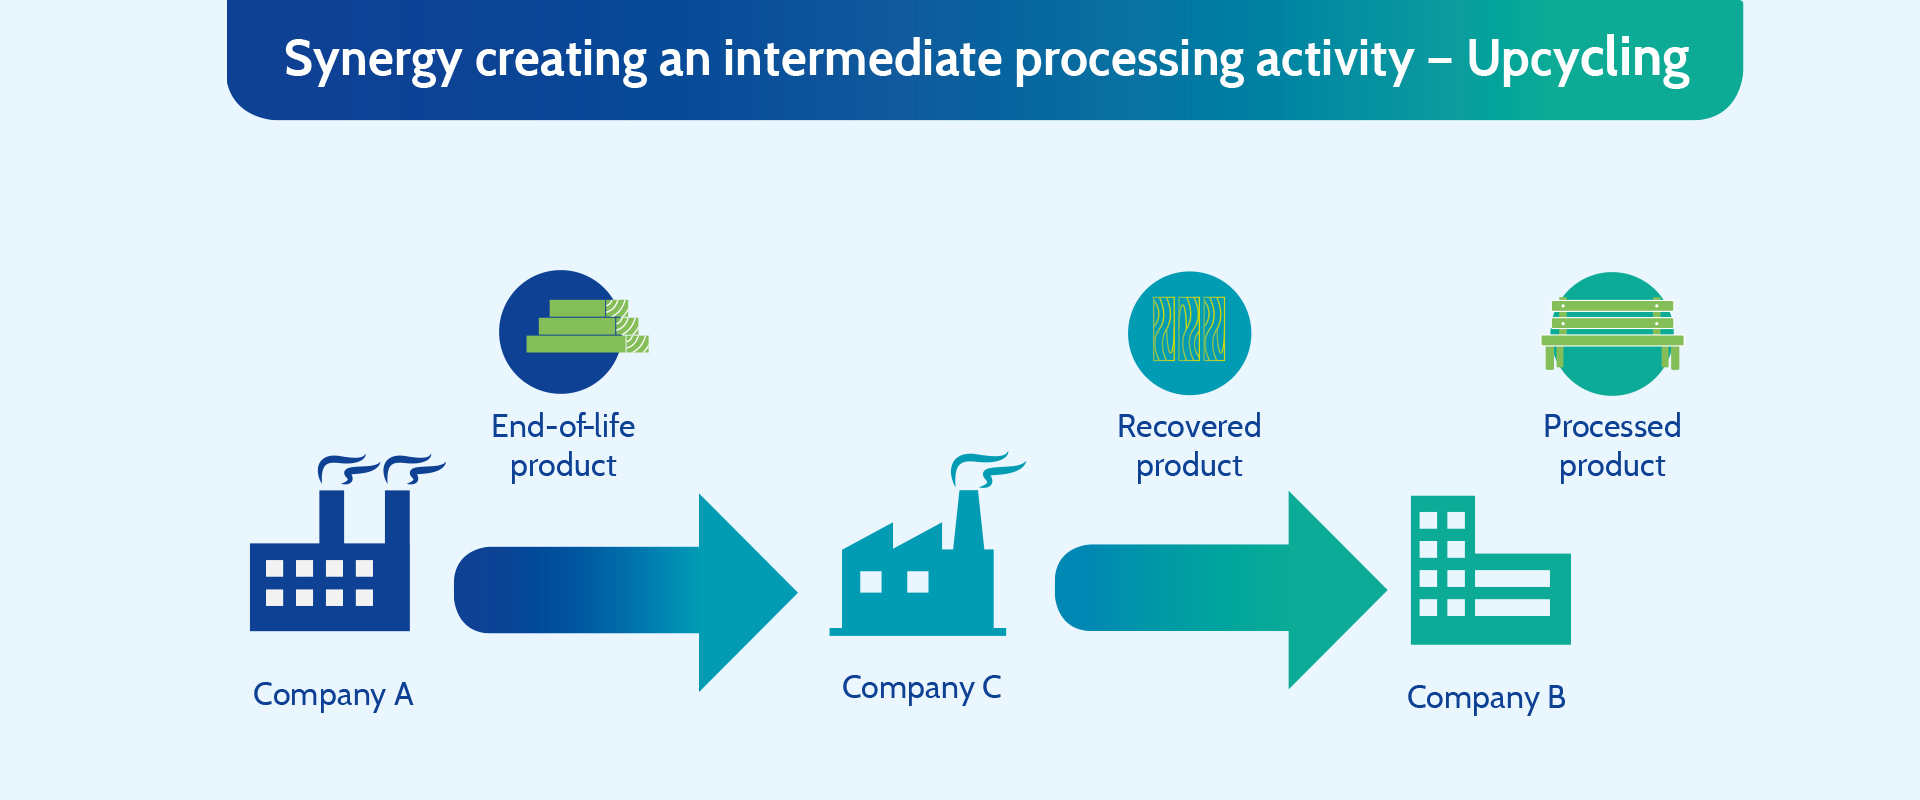 Creating an intermediate processing activity